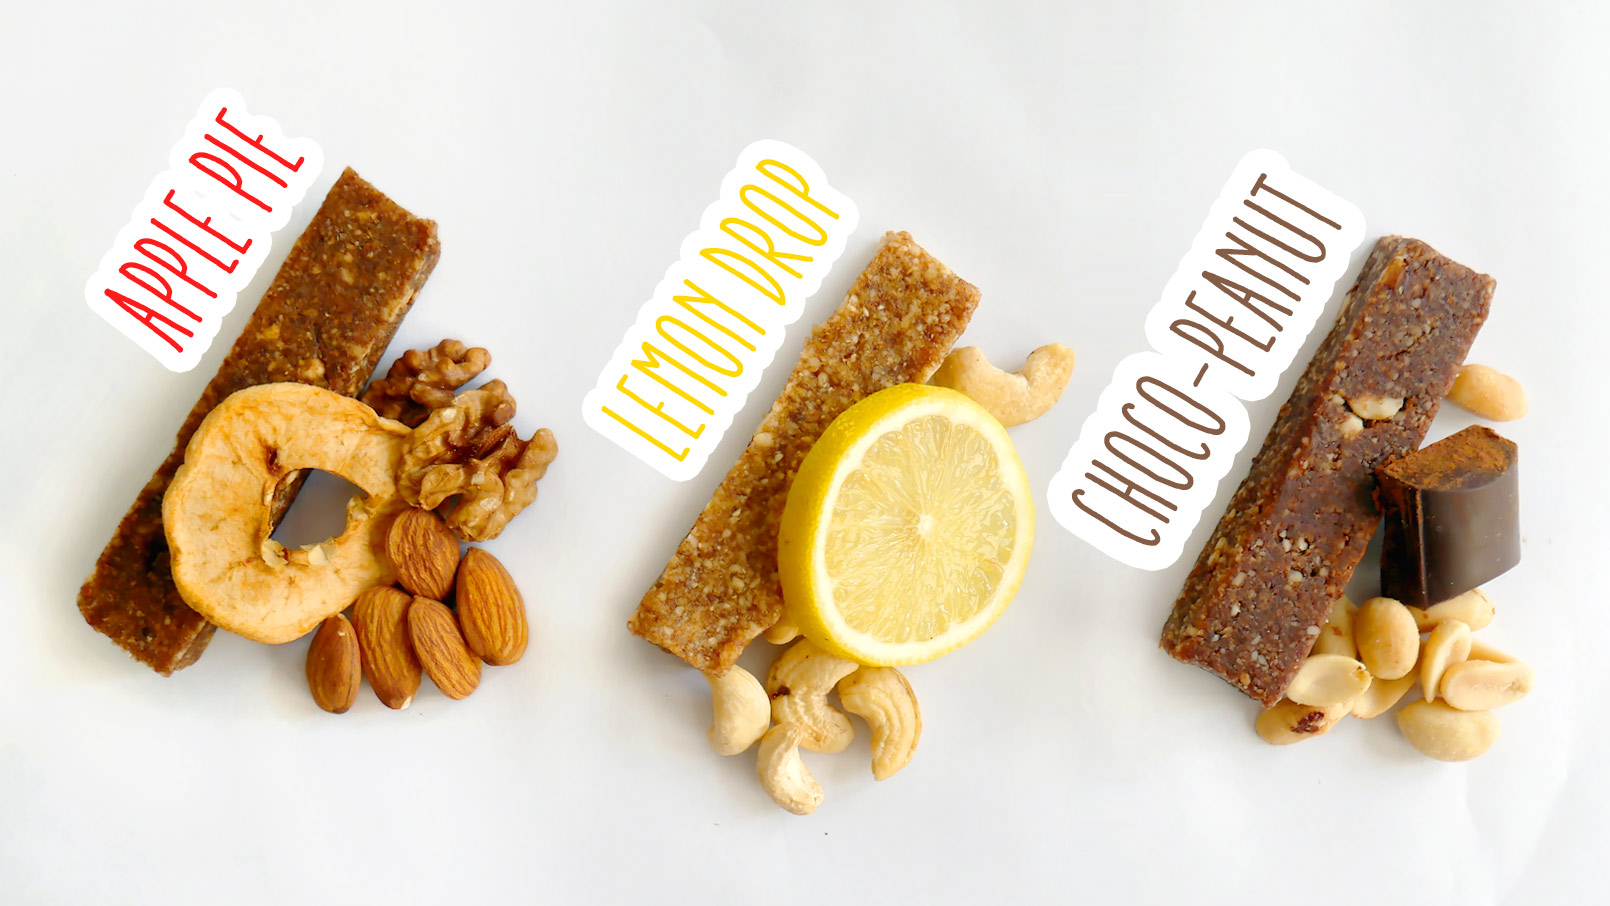 Lemon drop, chocolate peanut, and apple pie energy bars